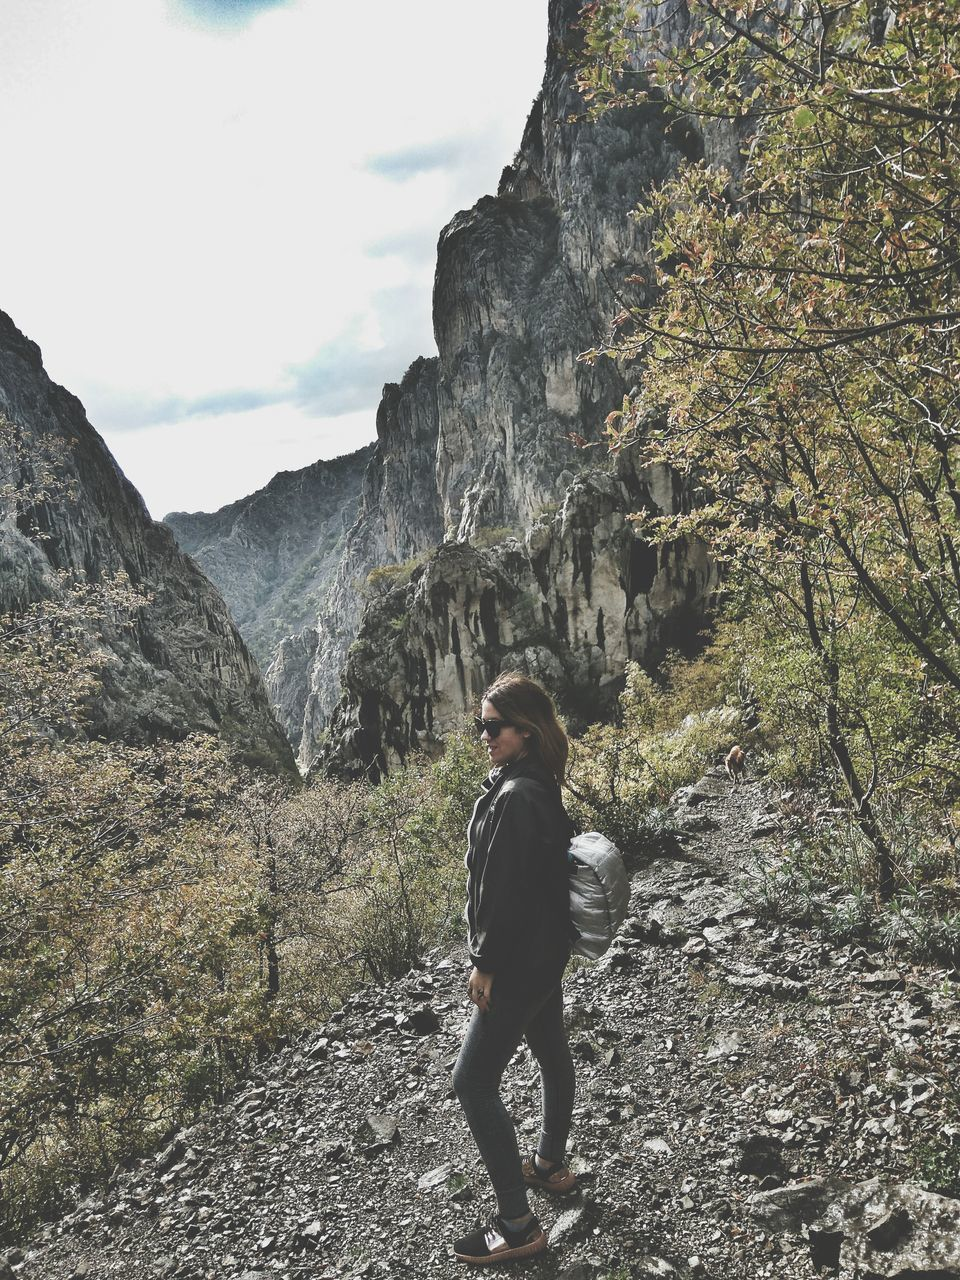 mountain, real people, one person, leisure activity, full length, nature, lifestyles, rock - object, casual clothing, day, standing, scenics, walking, beauty in nature, adventure, hiking, rear view, outdoors, men, landscape, tree, young adult, sky, people